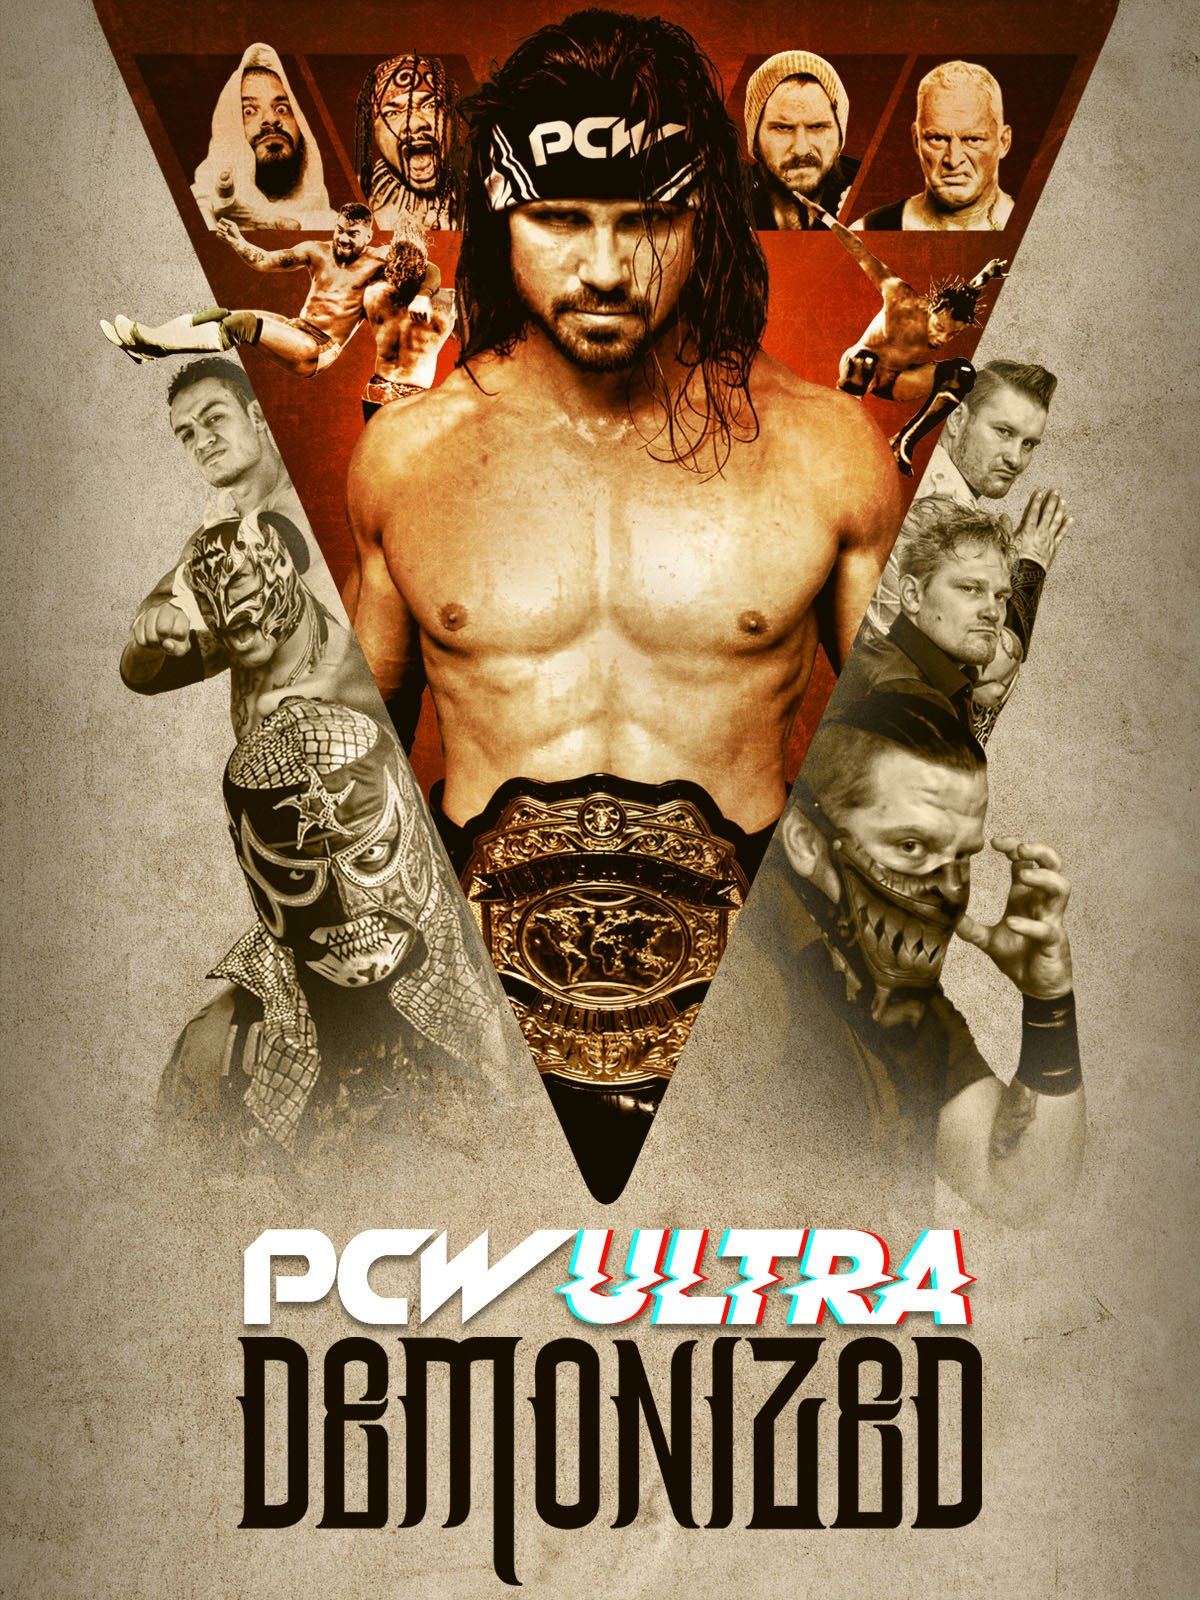 PCW Ultra Demonized